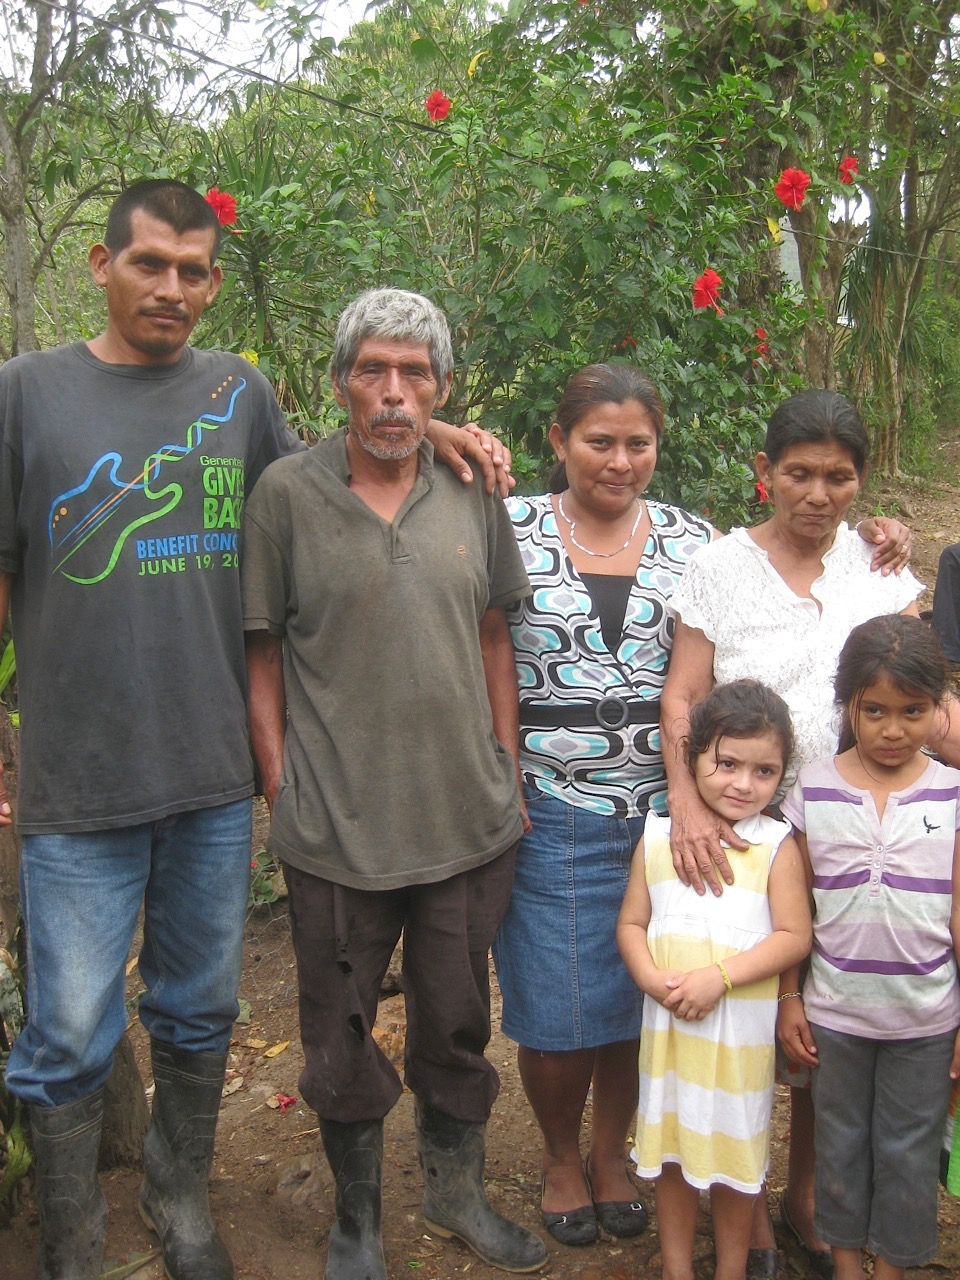 Jose, 2nd from left, and Catalina, 4th from left, with children and grandchildren.